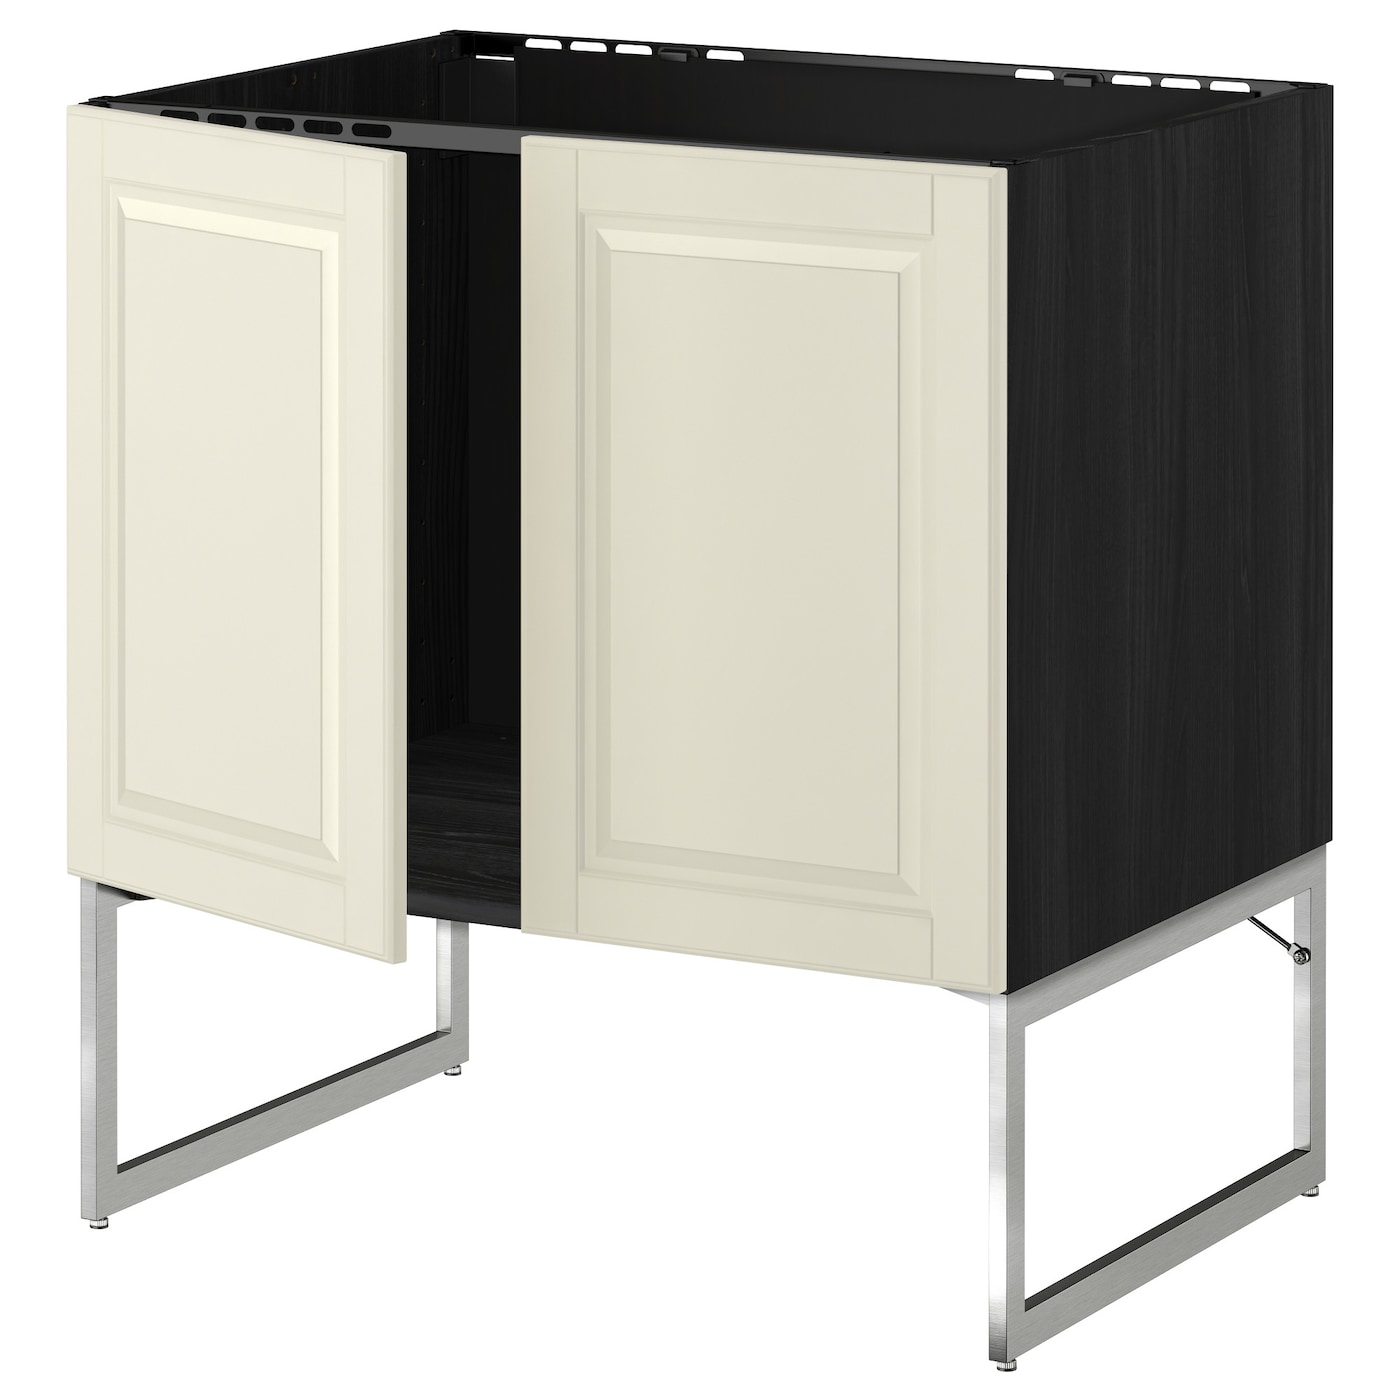 Metod base cabinet for sink 2 doors black bodbyn off - Ikea cabinet doors on existing cabinets ...